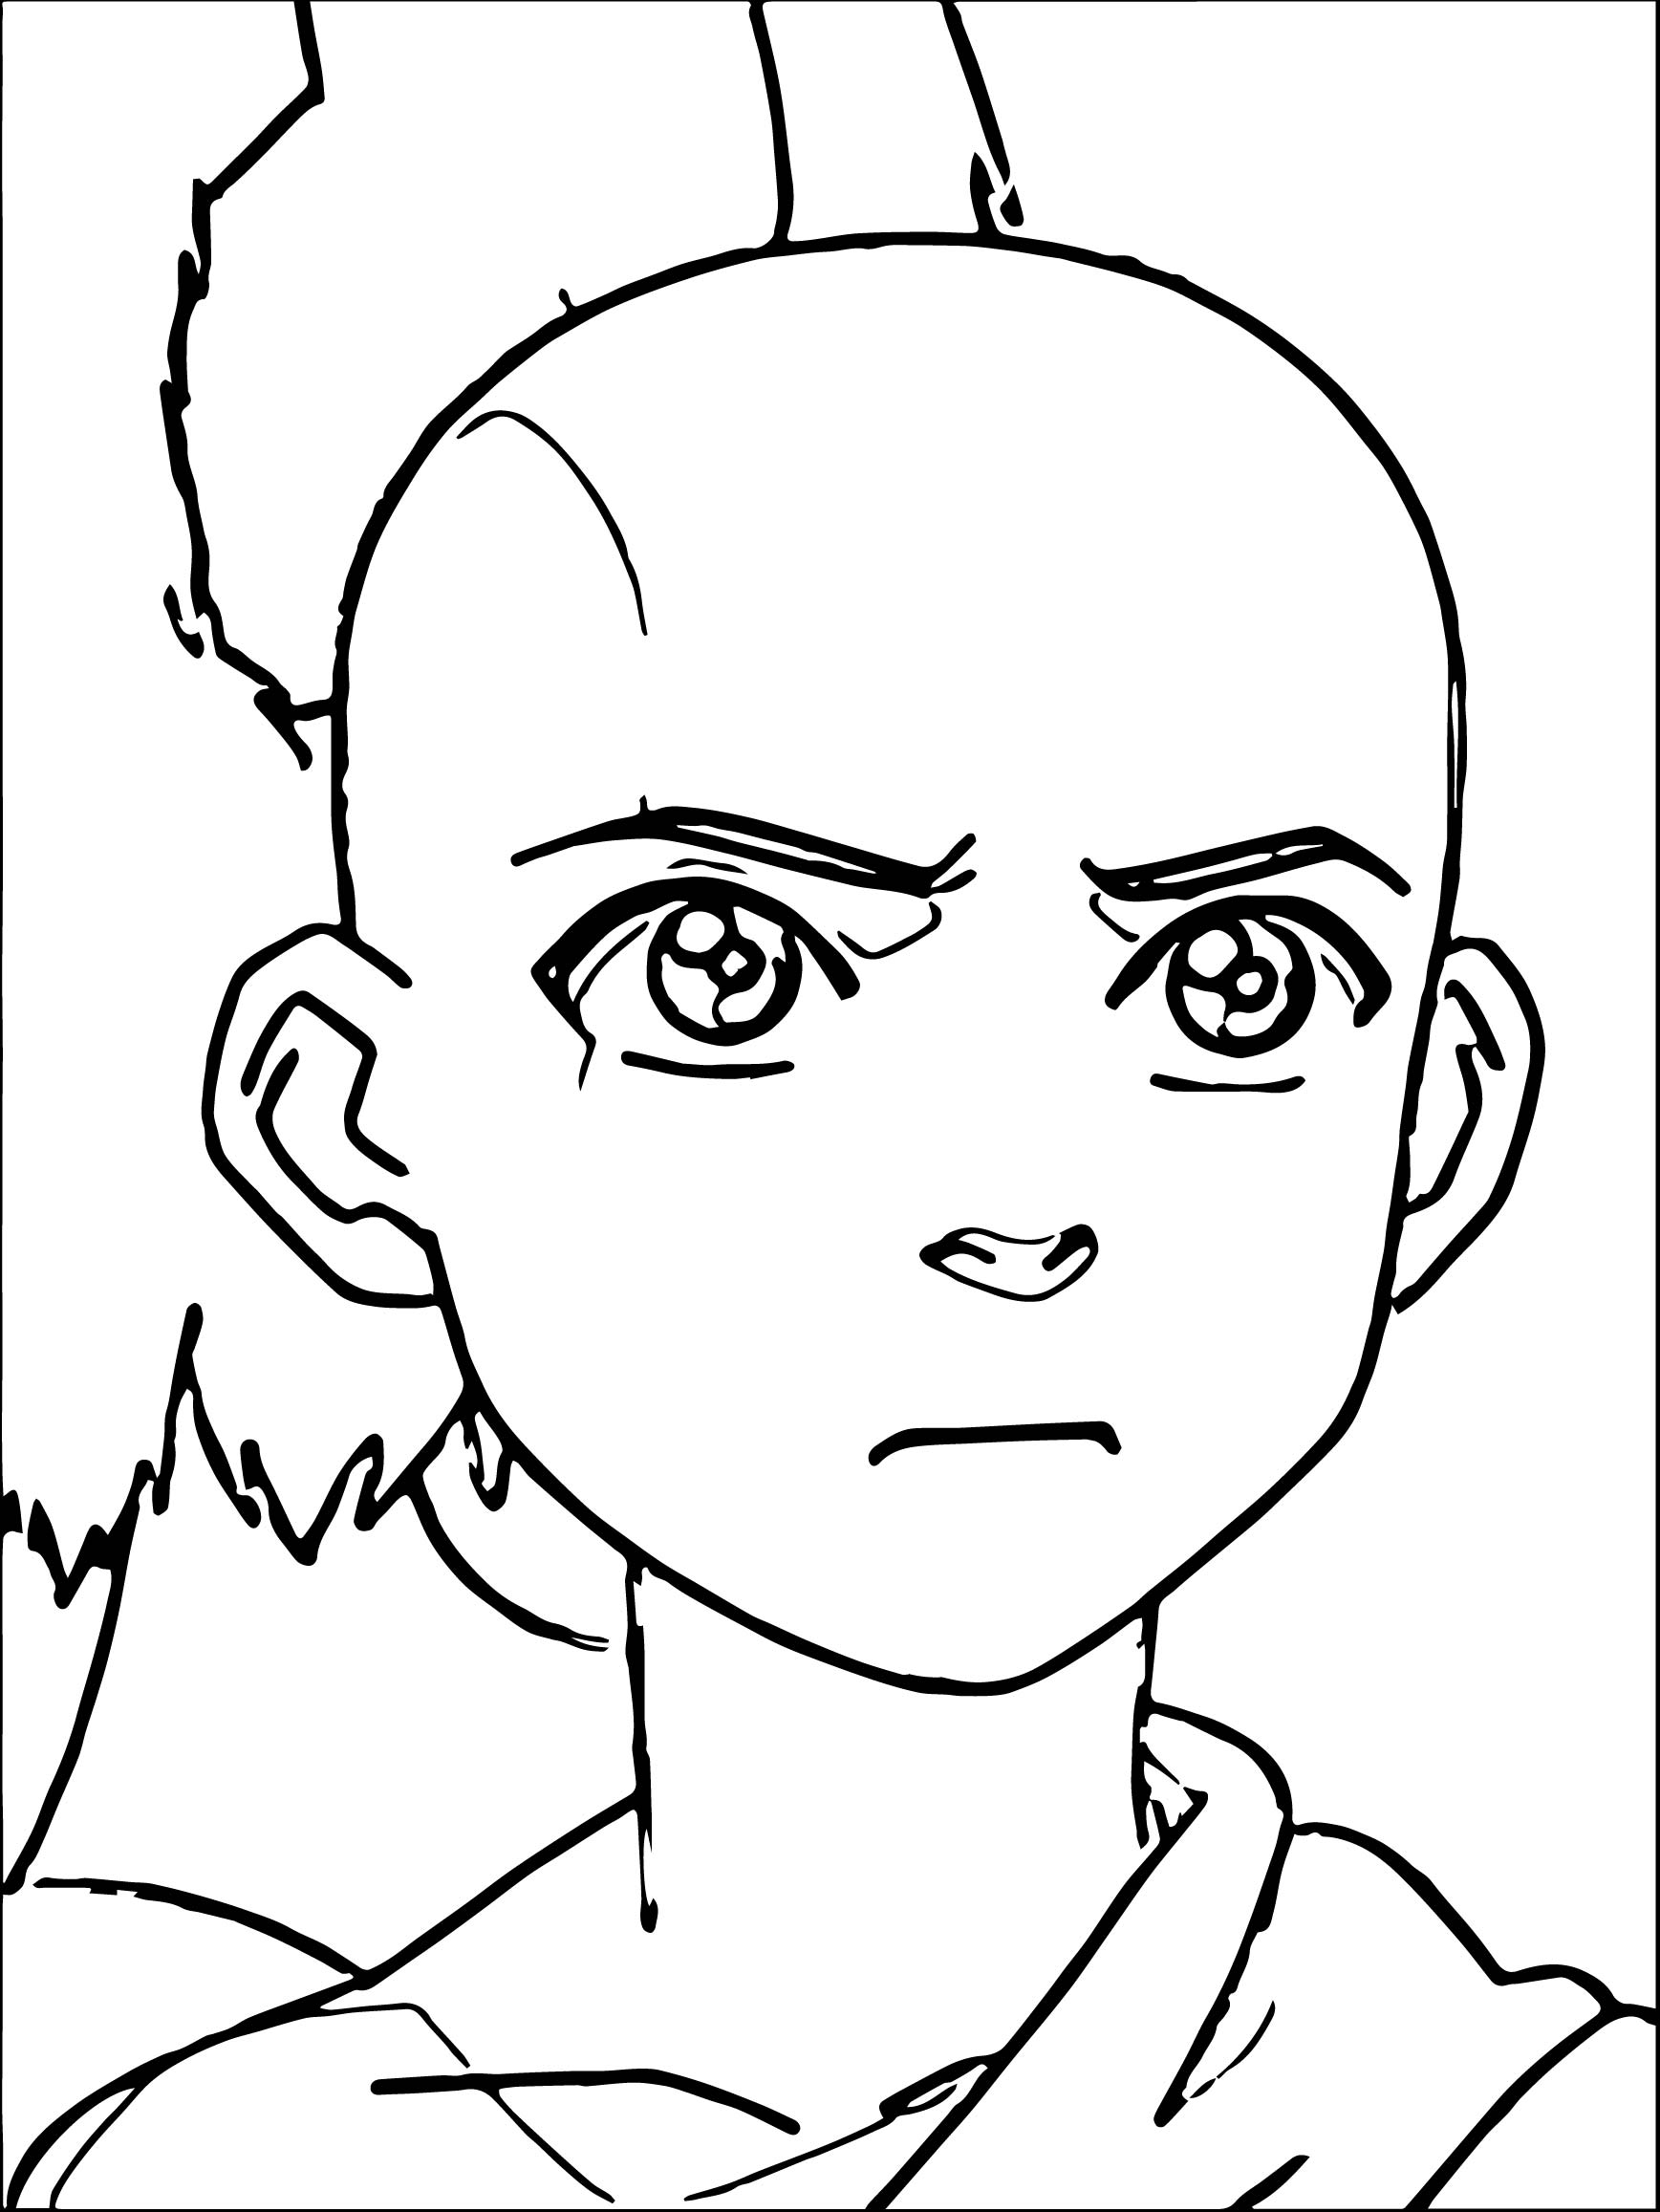 Coloring pages for boyfriend - Tumblr Inline Avatar Aang Coloring Page Wecoloringpage Boyfriend Coloring Pages Portrait Coloring Pages Tumblr